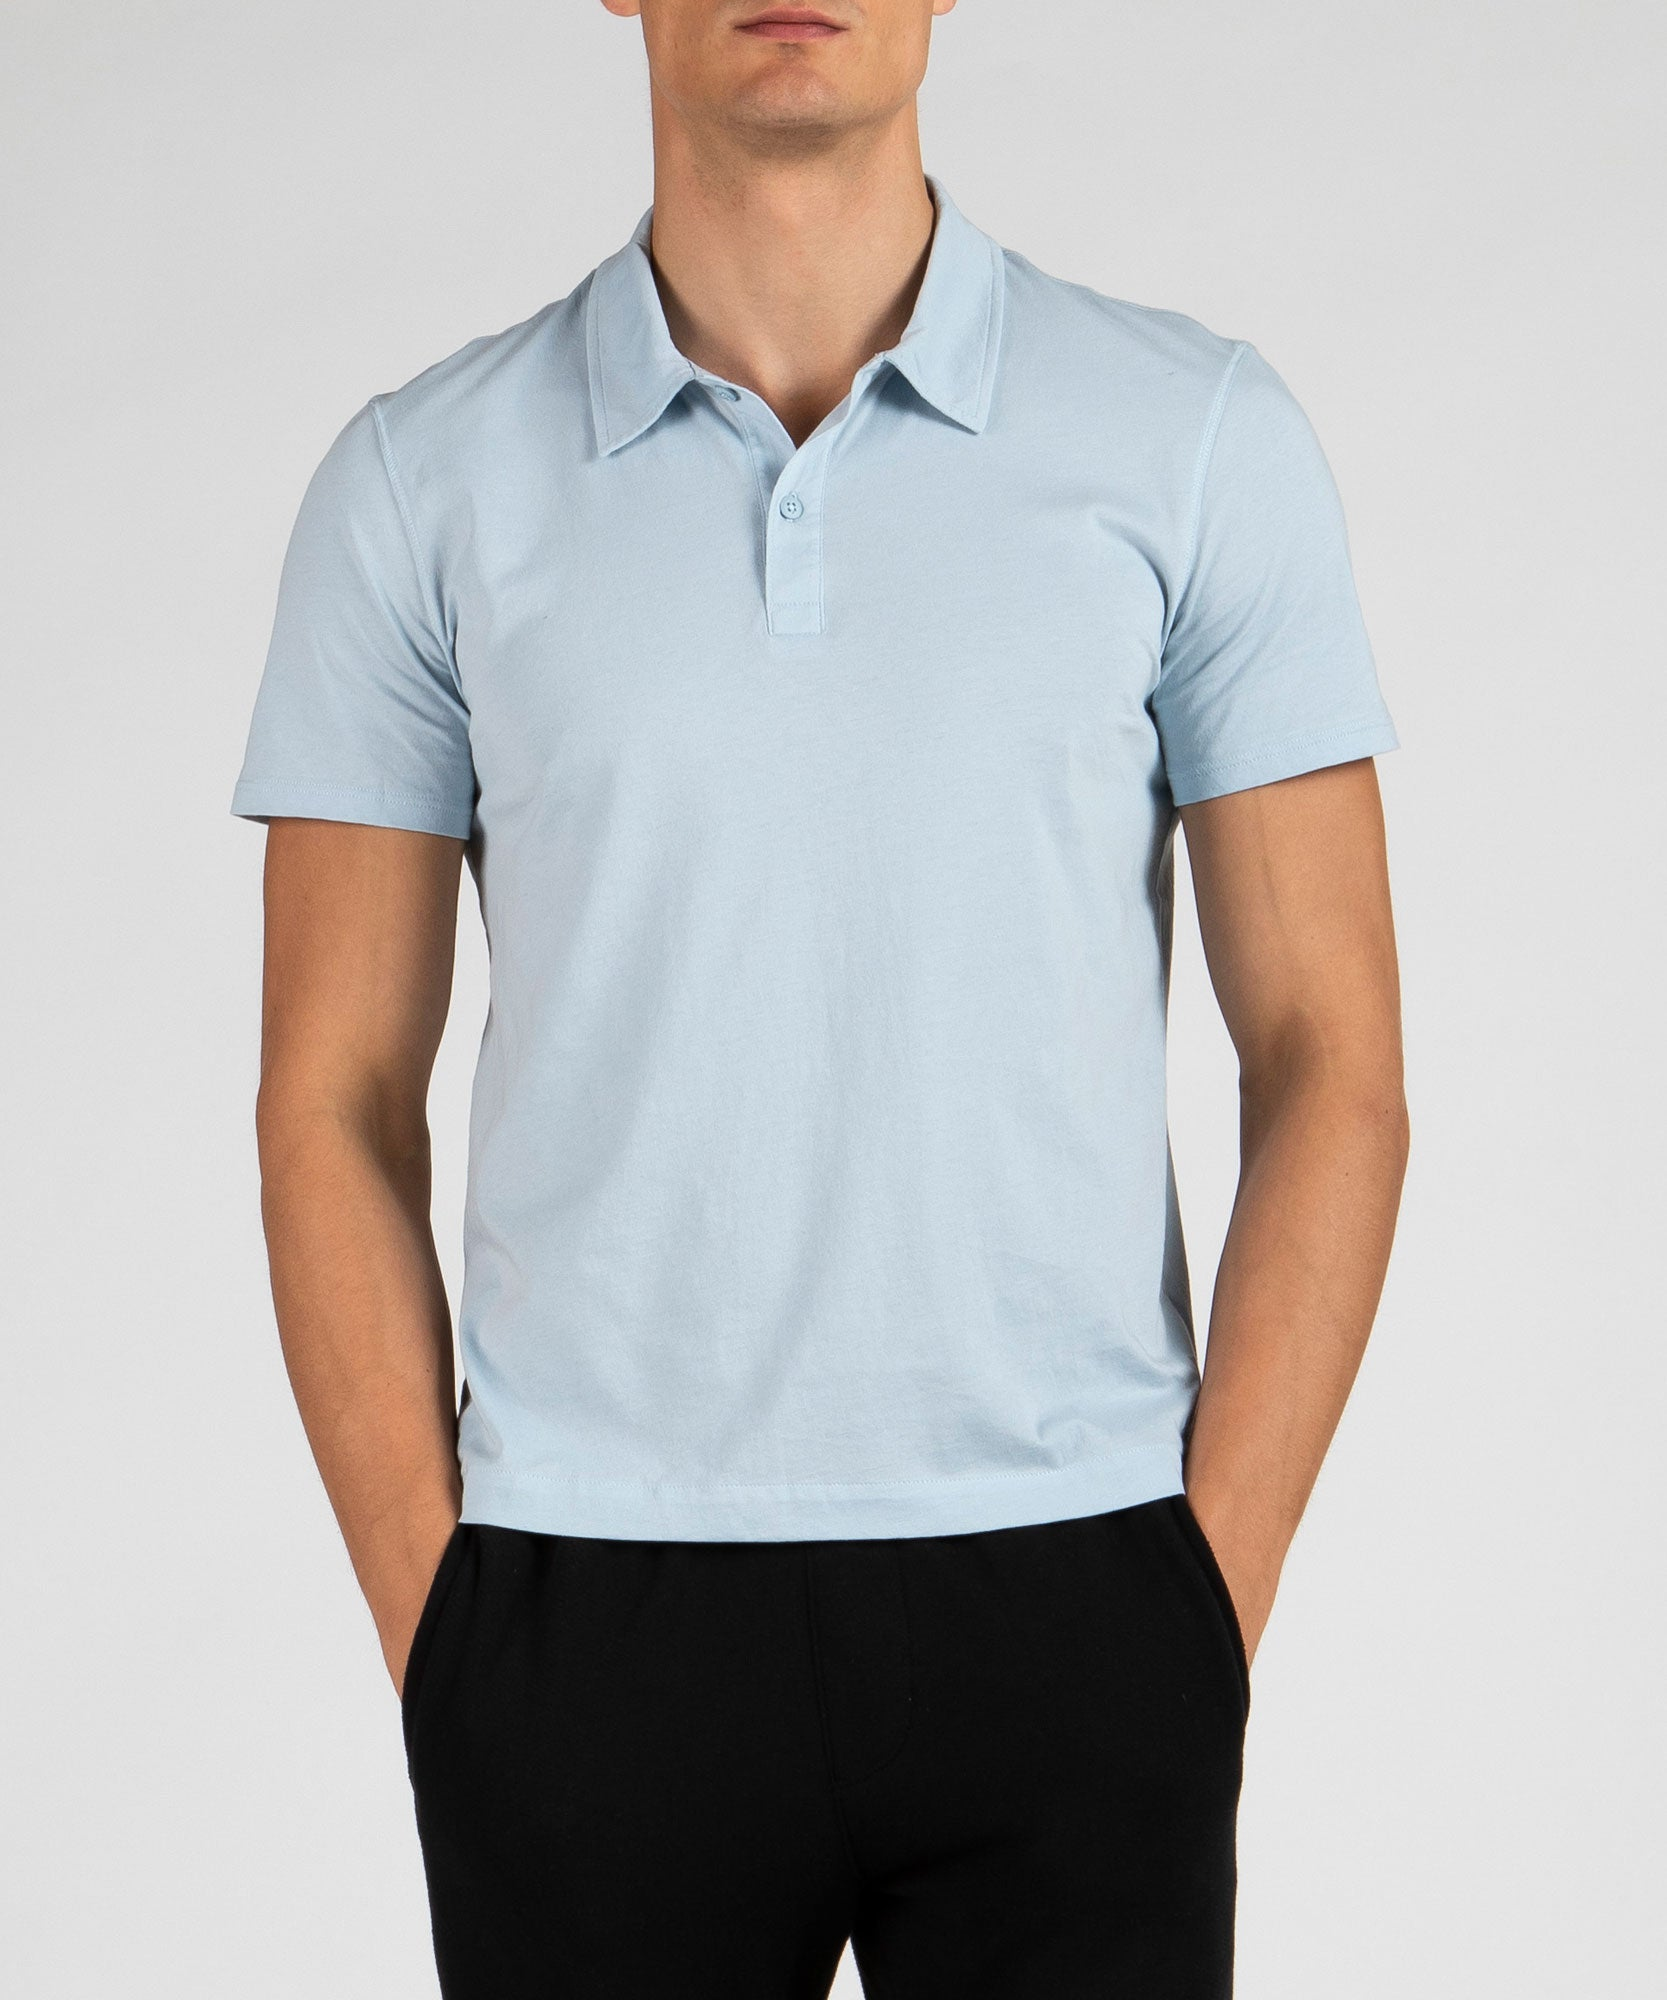 Blue Classic Jersey Short Sleeve Polo - Men's Polo Shirt by ATM Anthony Thomas Melillo